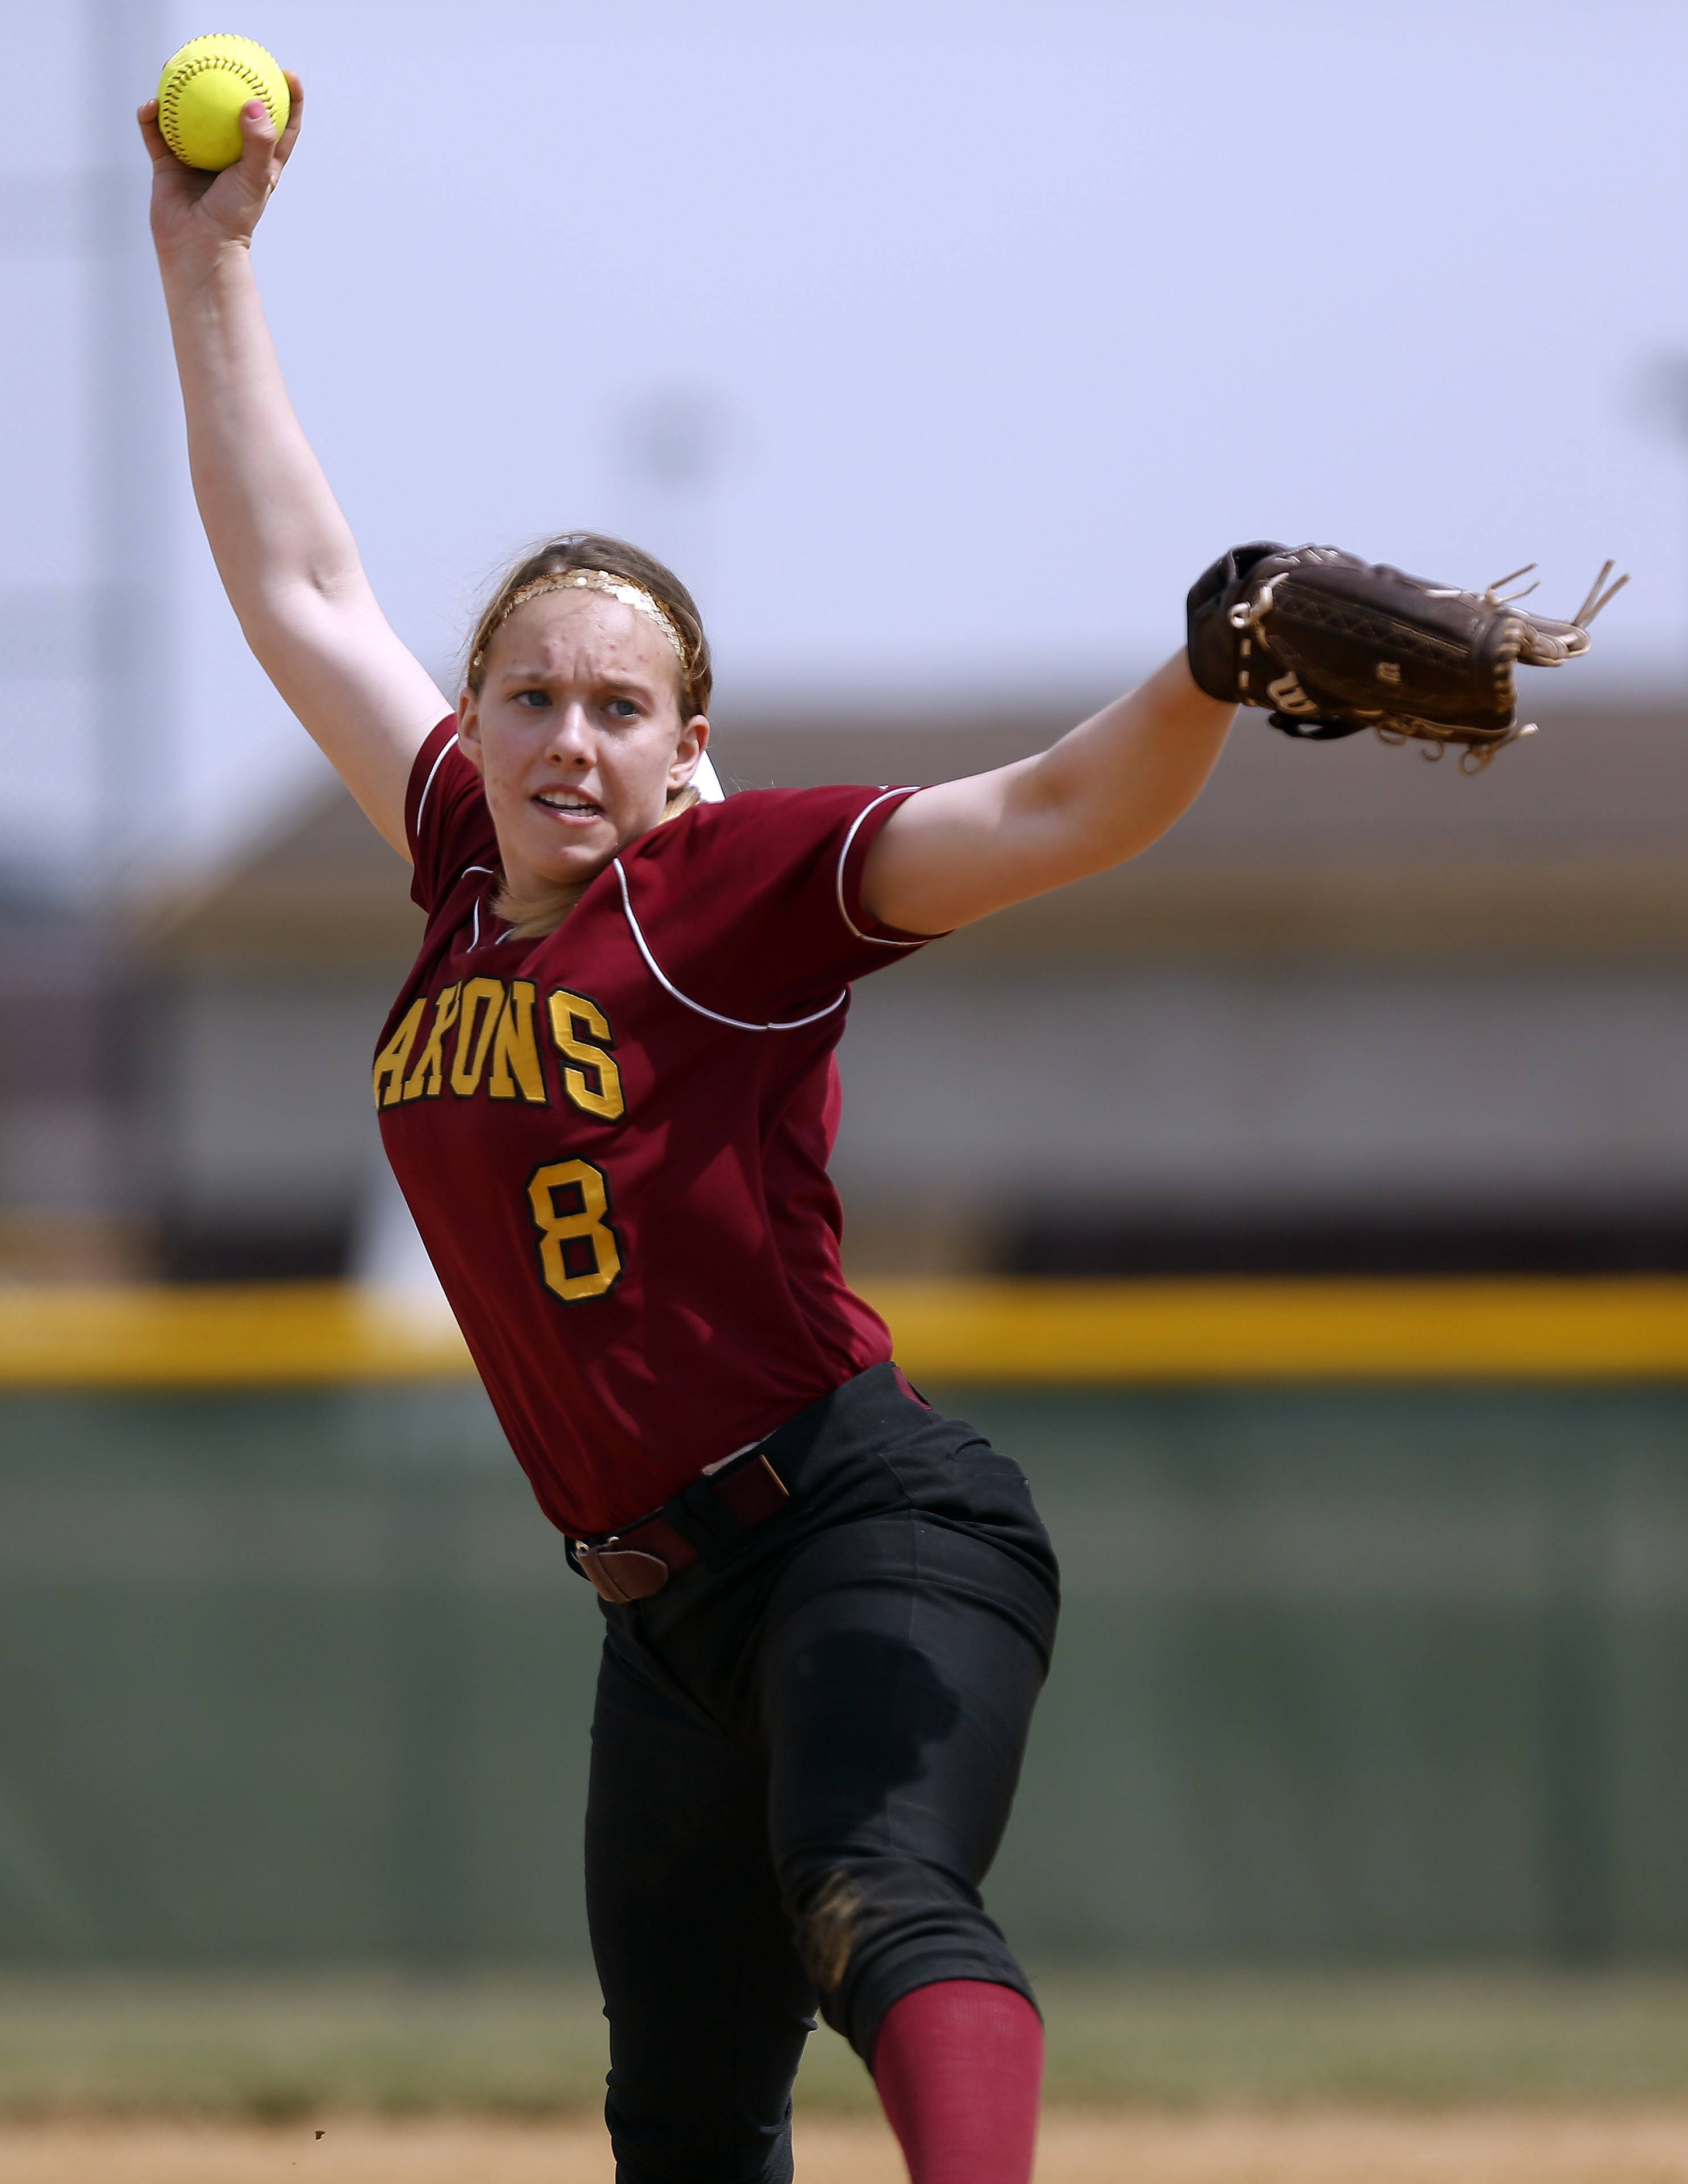 Schaumburg's Roxanne Kakareka delivers a pitch at Jacobs on Saturday.